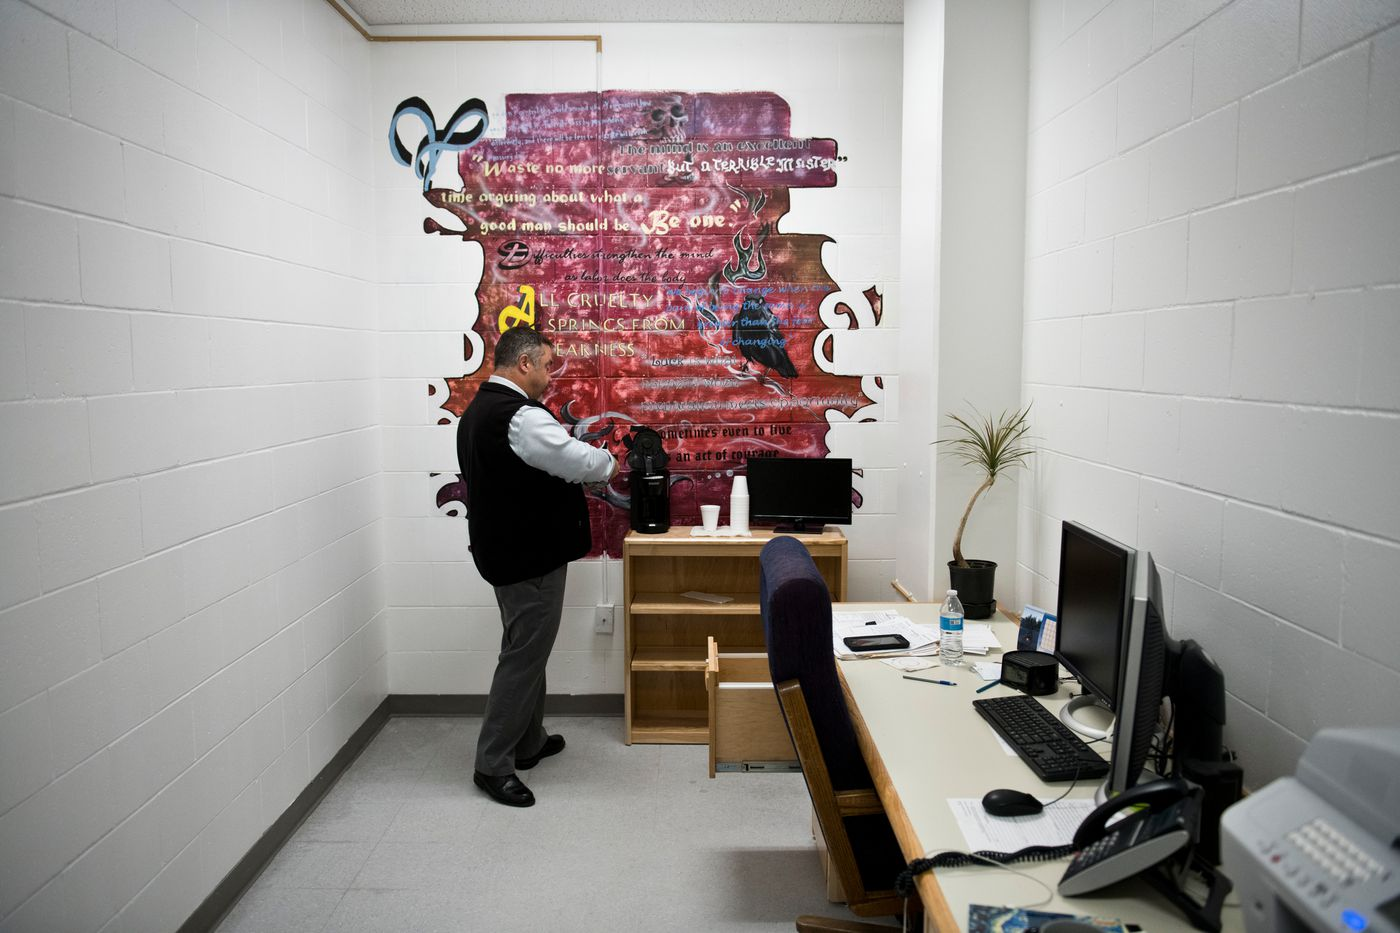 "Spring Creek Correctional Center superintendent Bill Lapinskas makes coffee after his early-morning arrival to work on Sept. 27. A mural, painted on his office wall by prisoners, includes sayings he had collected and sometimes shared with others, such as ""All cruelty springs from weakness."" (Marc Lester / ADN)"